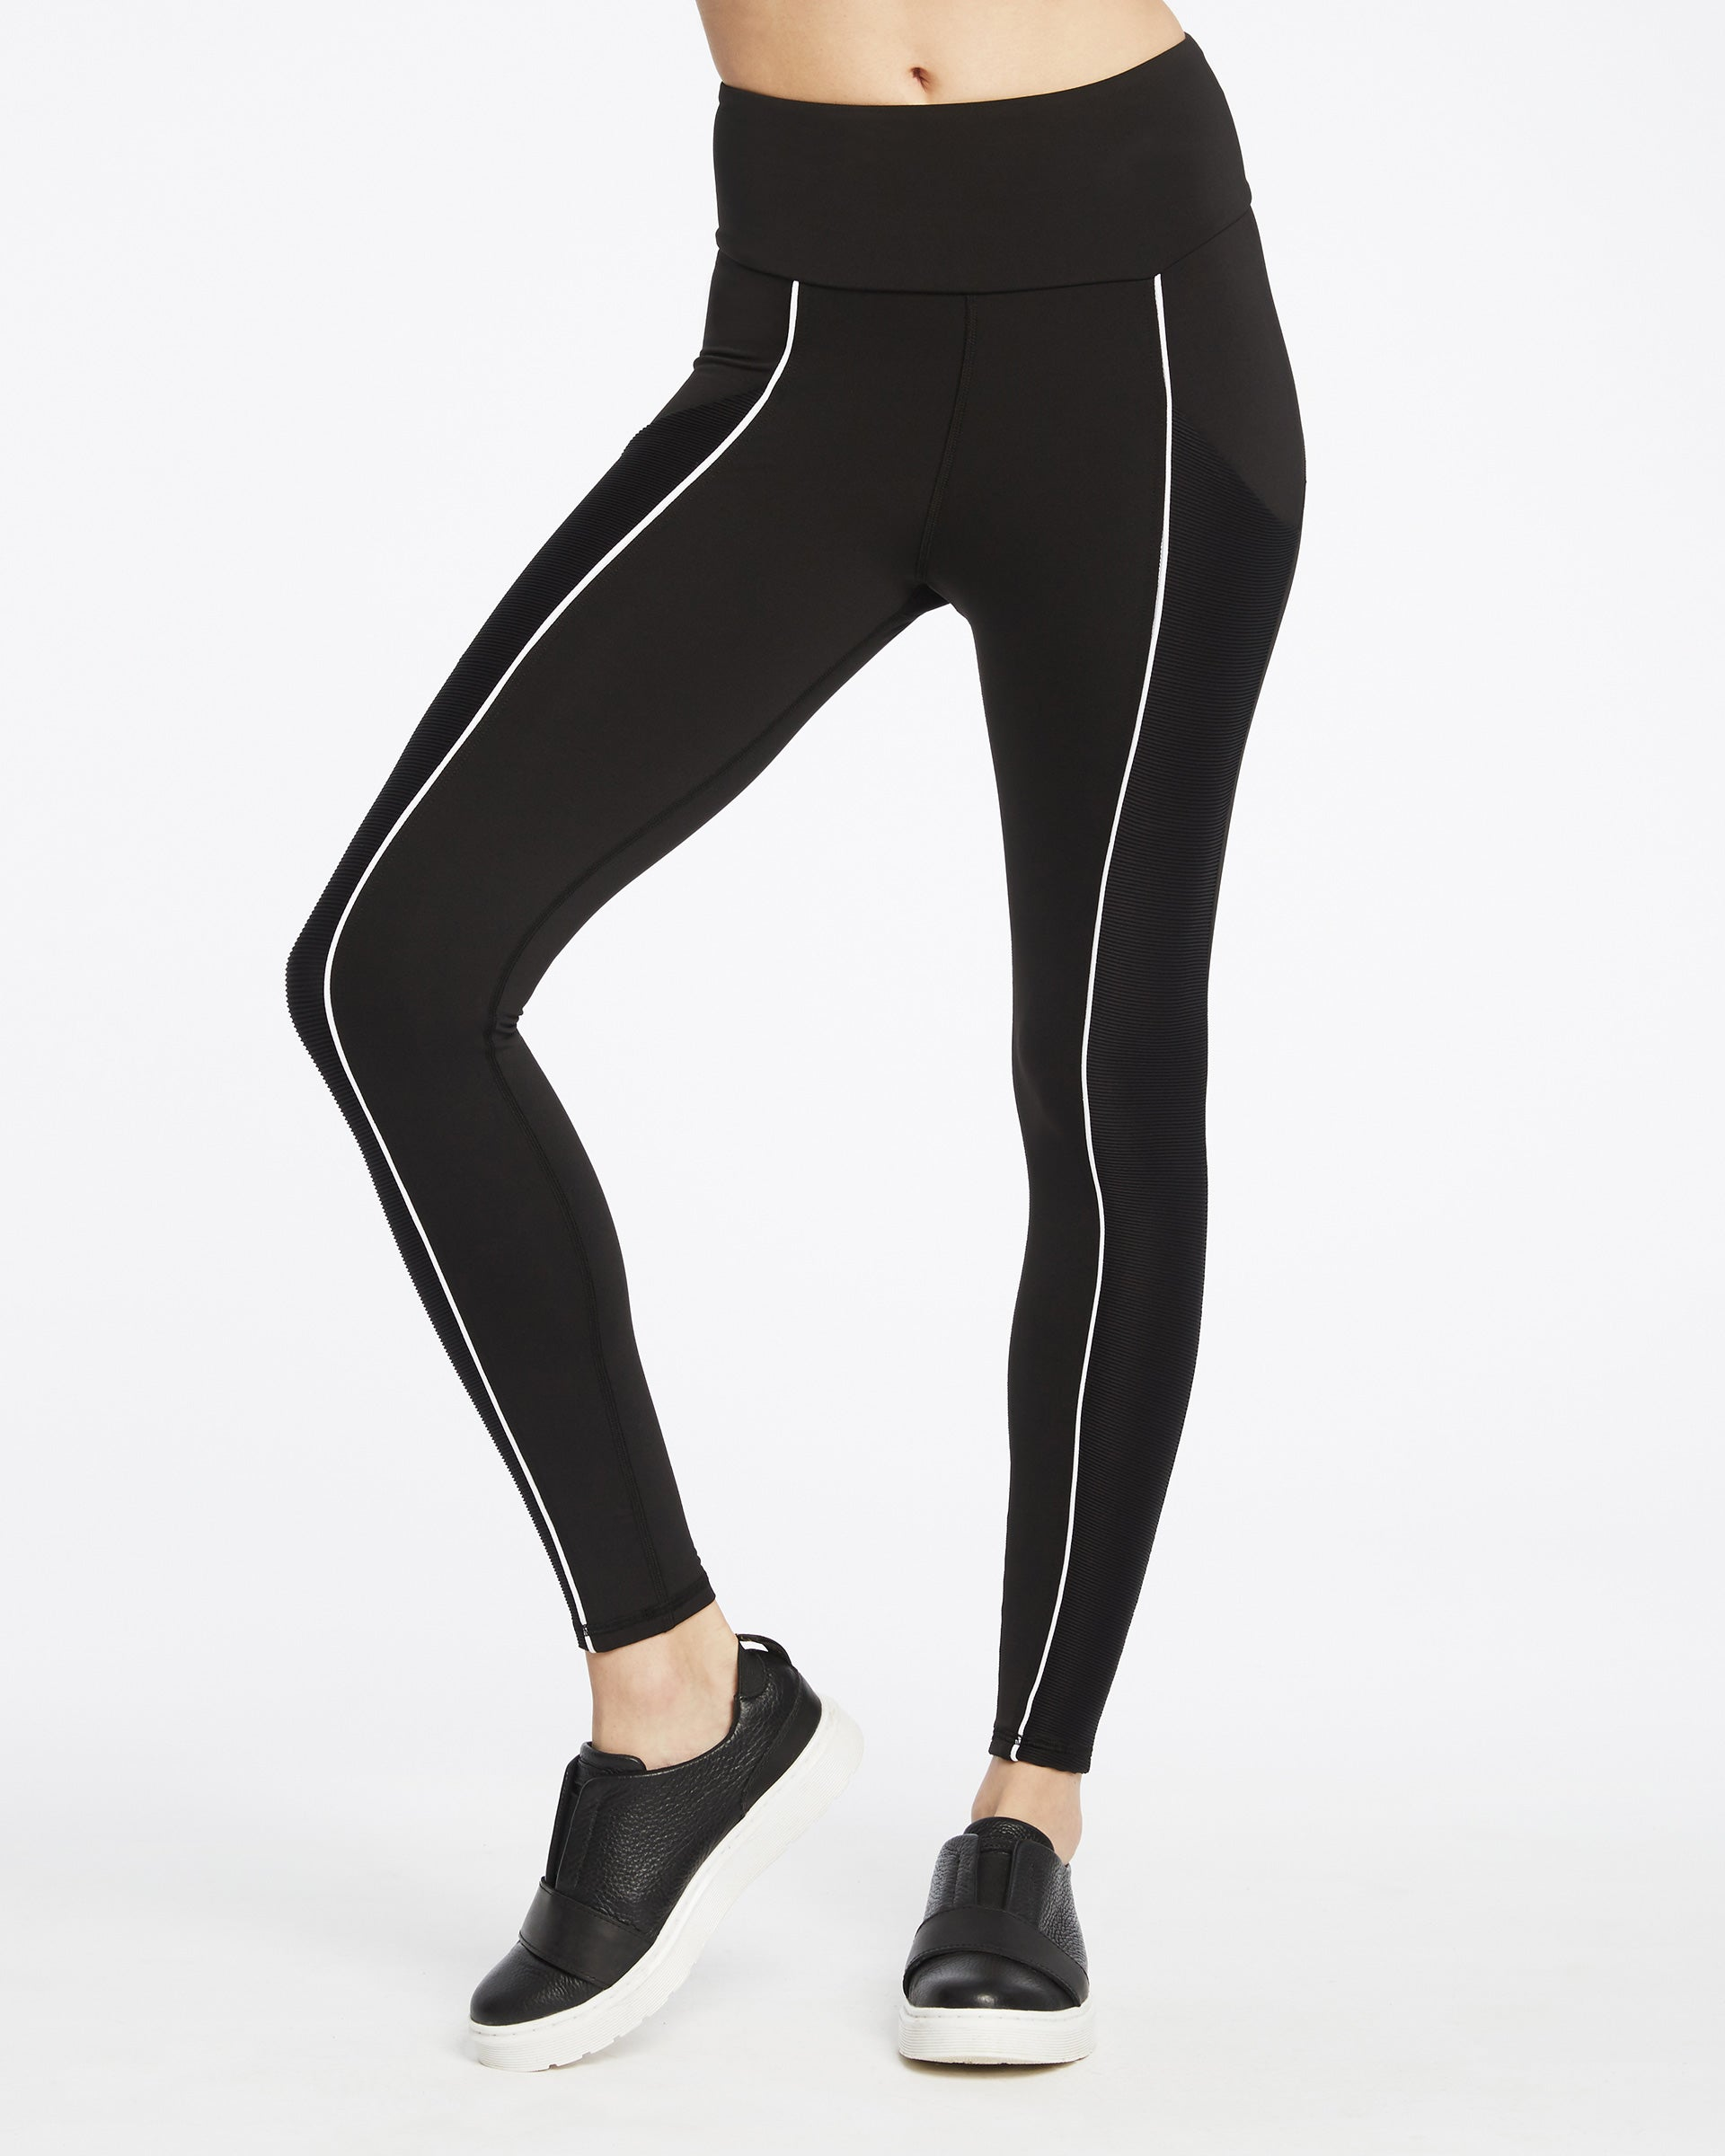 Gradient Pocket Legging - Black/White